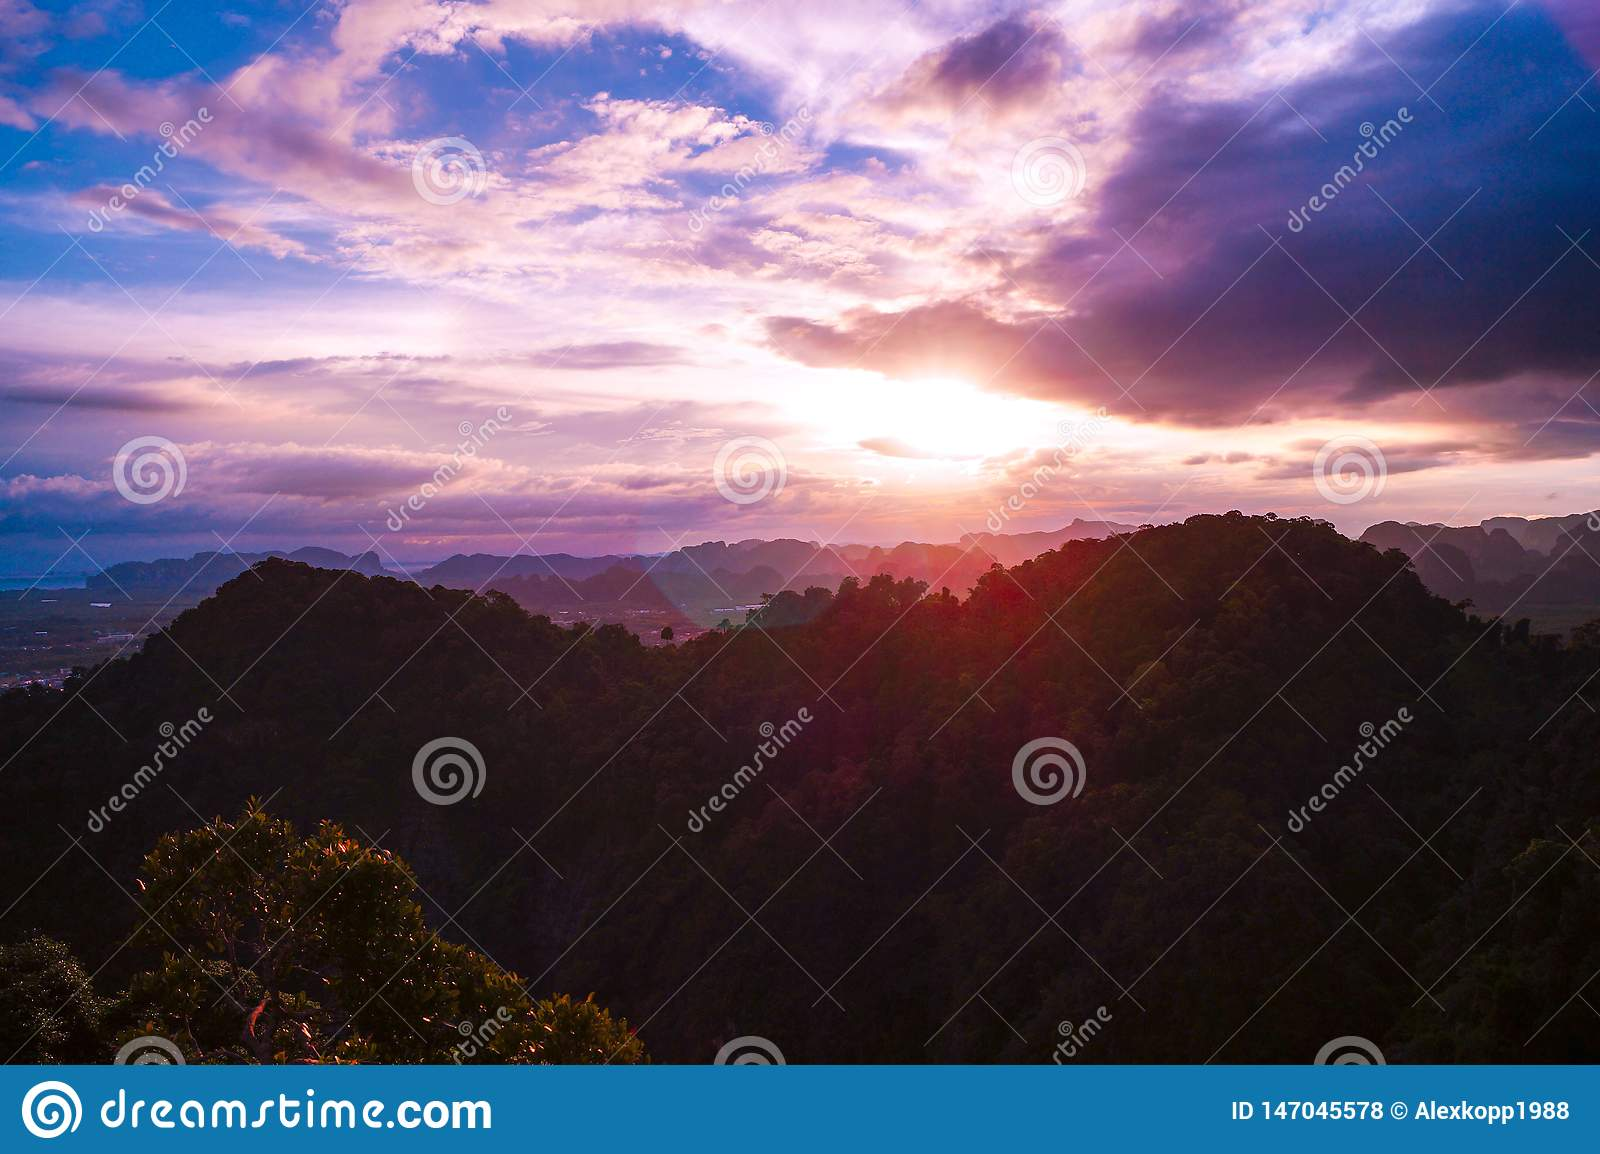 A colorful sunset with a beautiful view from the Tiger Cave Mountain over the mountains of Krabi, Thailand